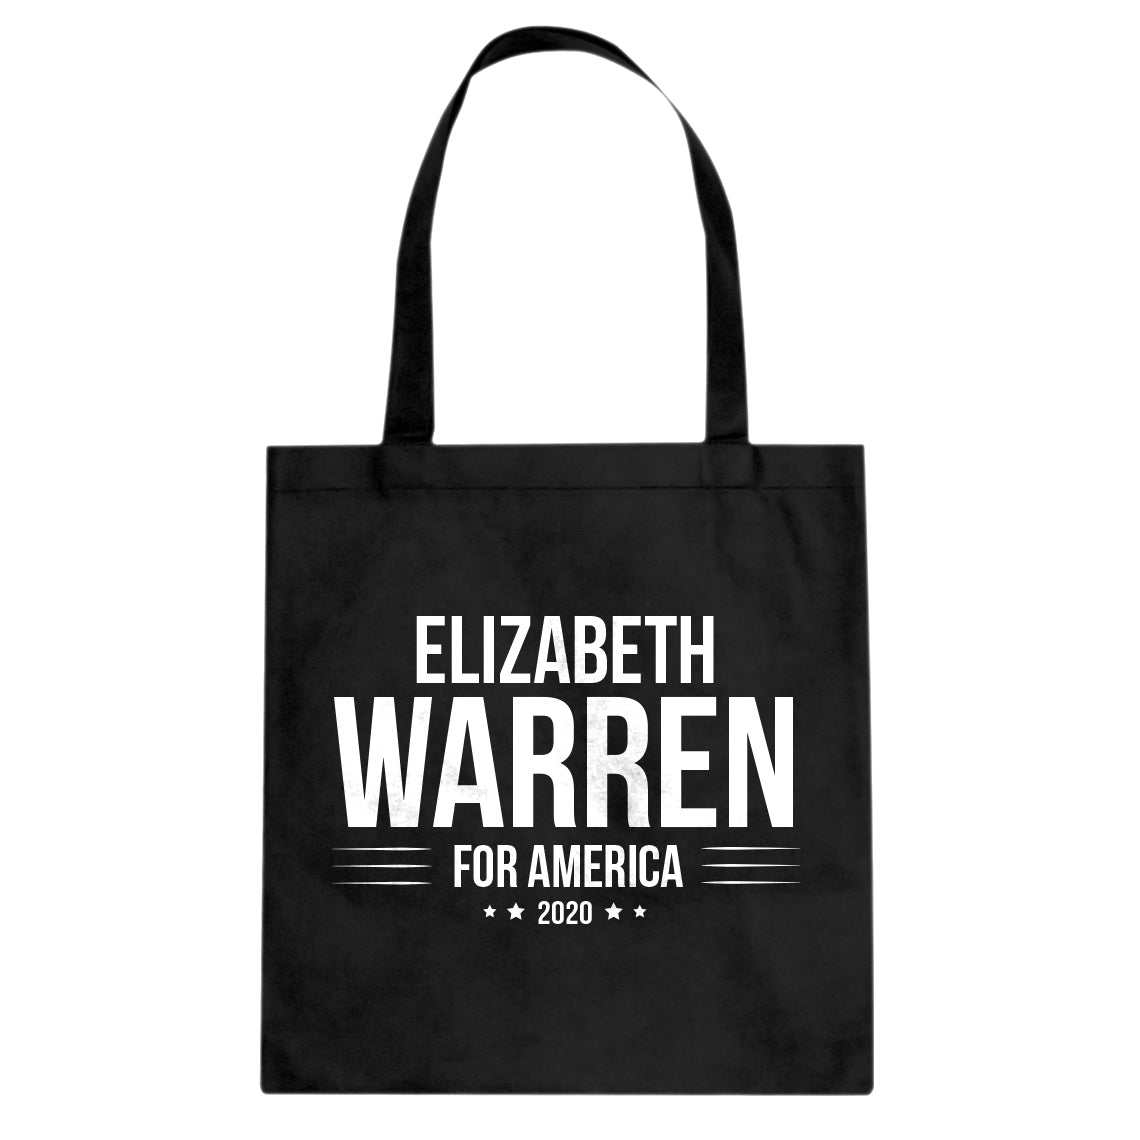 ELIZABETH WARREN for President 2020 Cotton Canvas Tote Bag